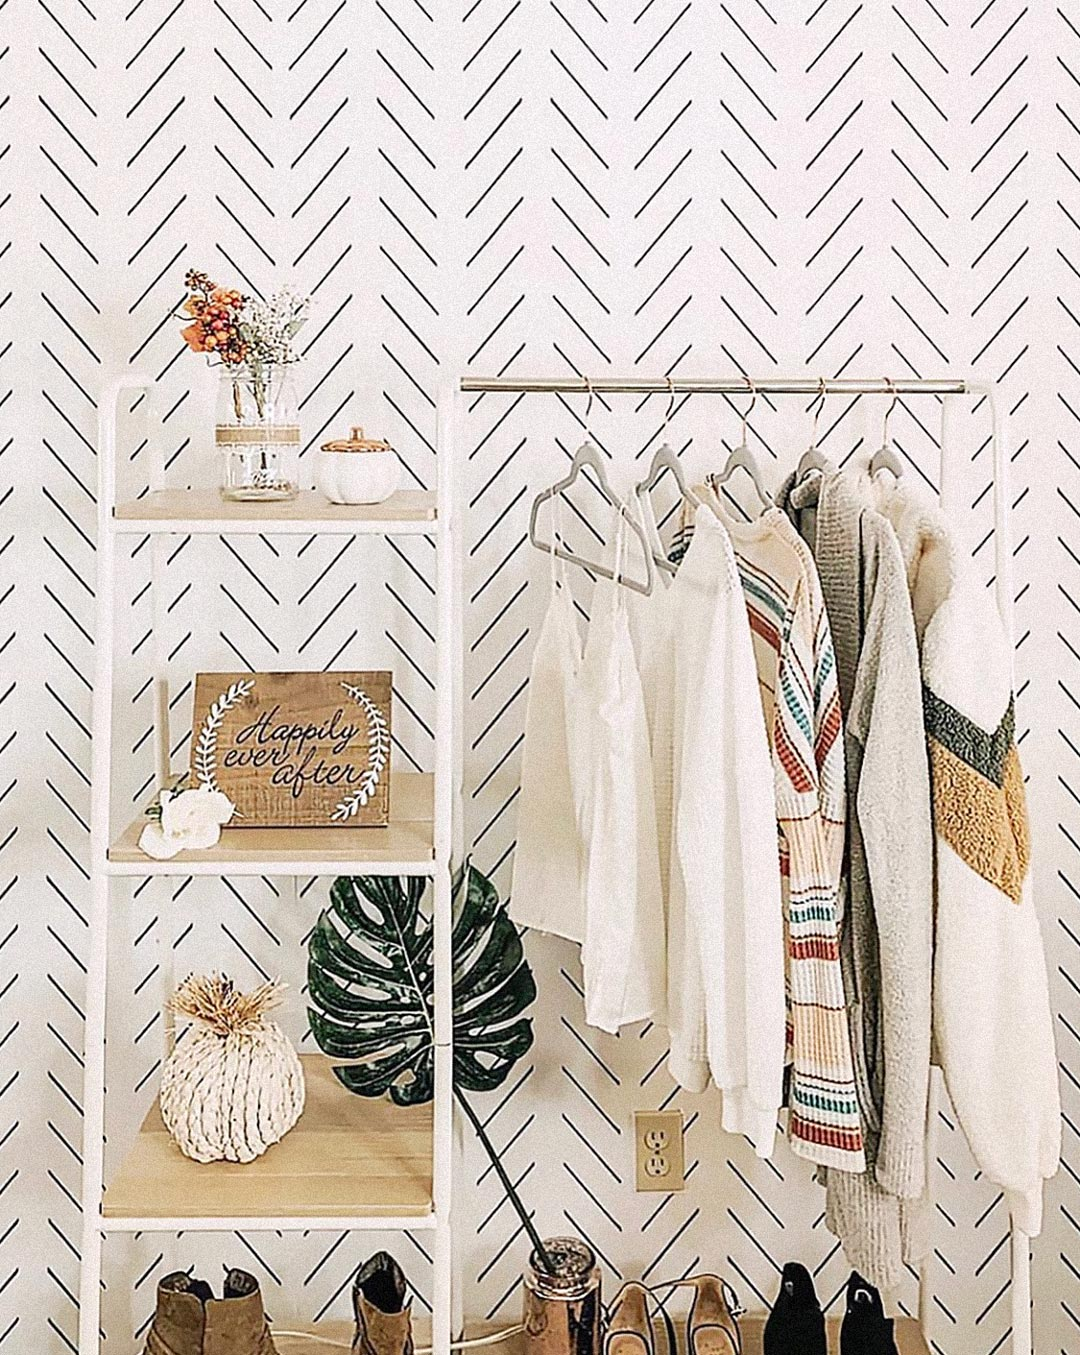 Walk in closet interior design with modern herringbone removable wallpaper, white and wood clothing rack and beautiful clothes display in bohemian farmhouse style